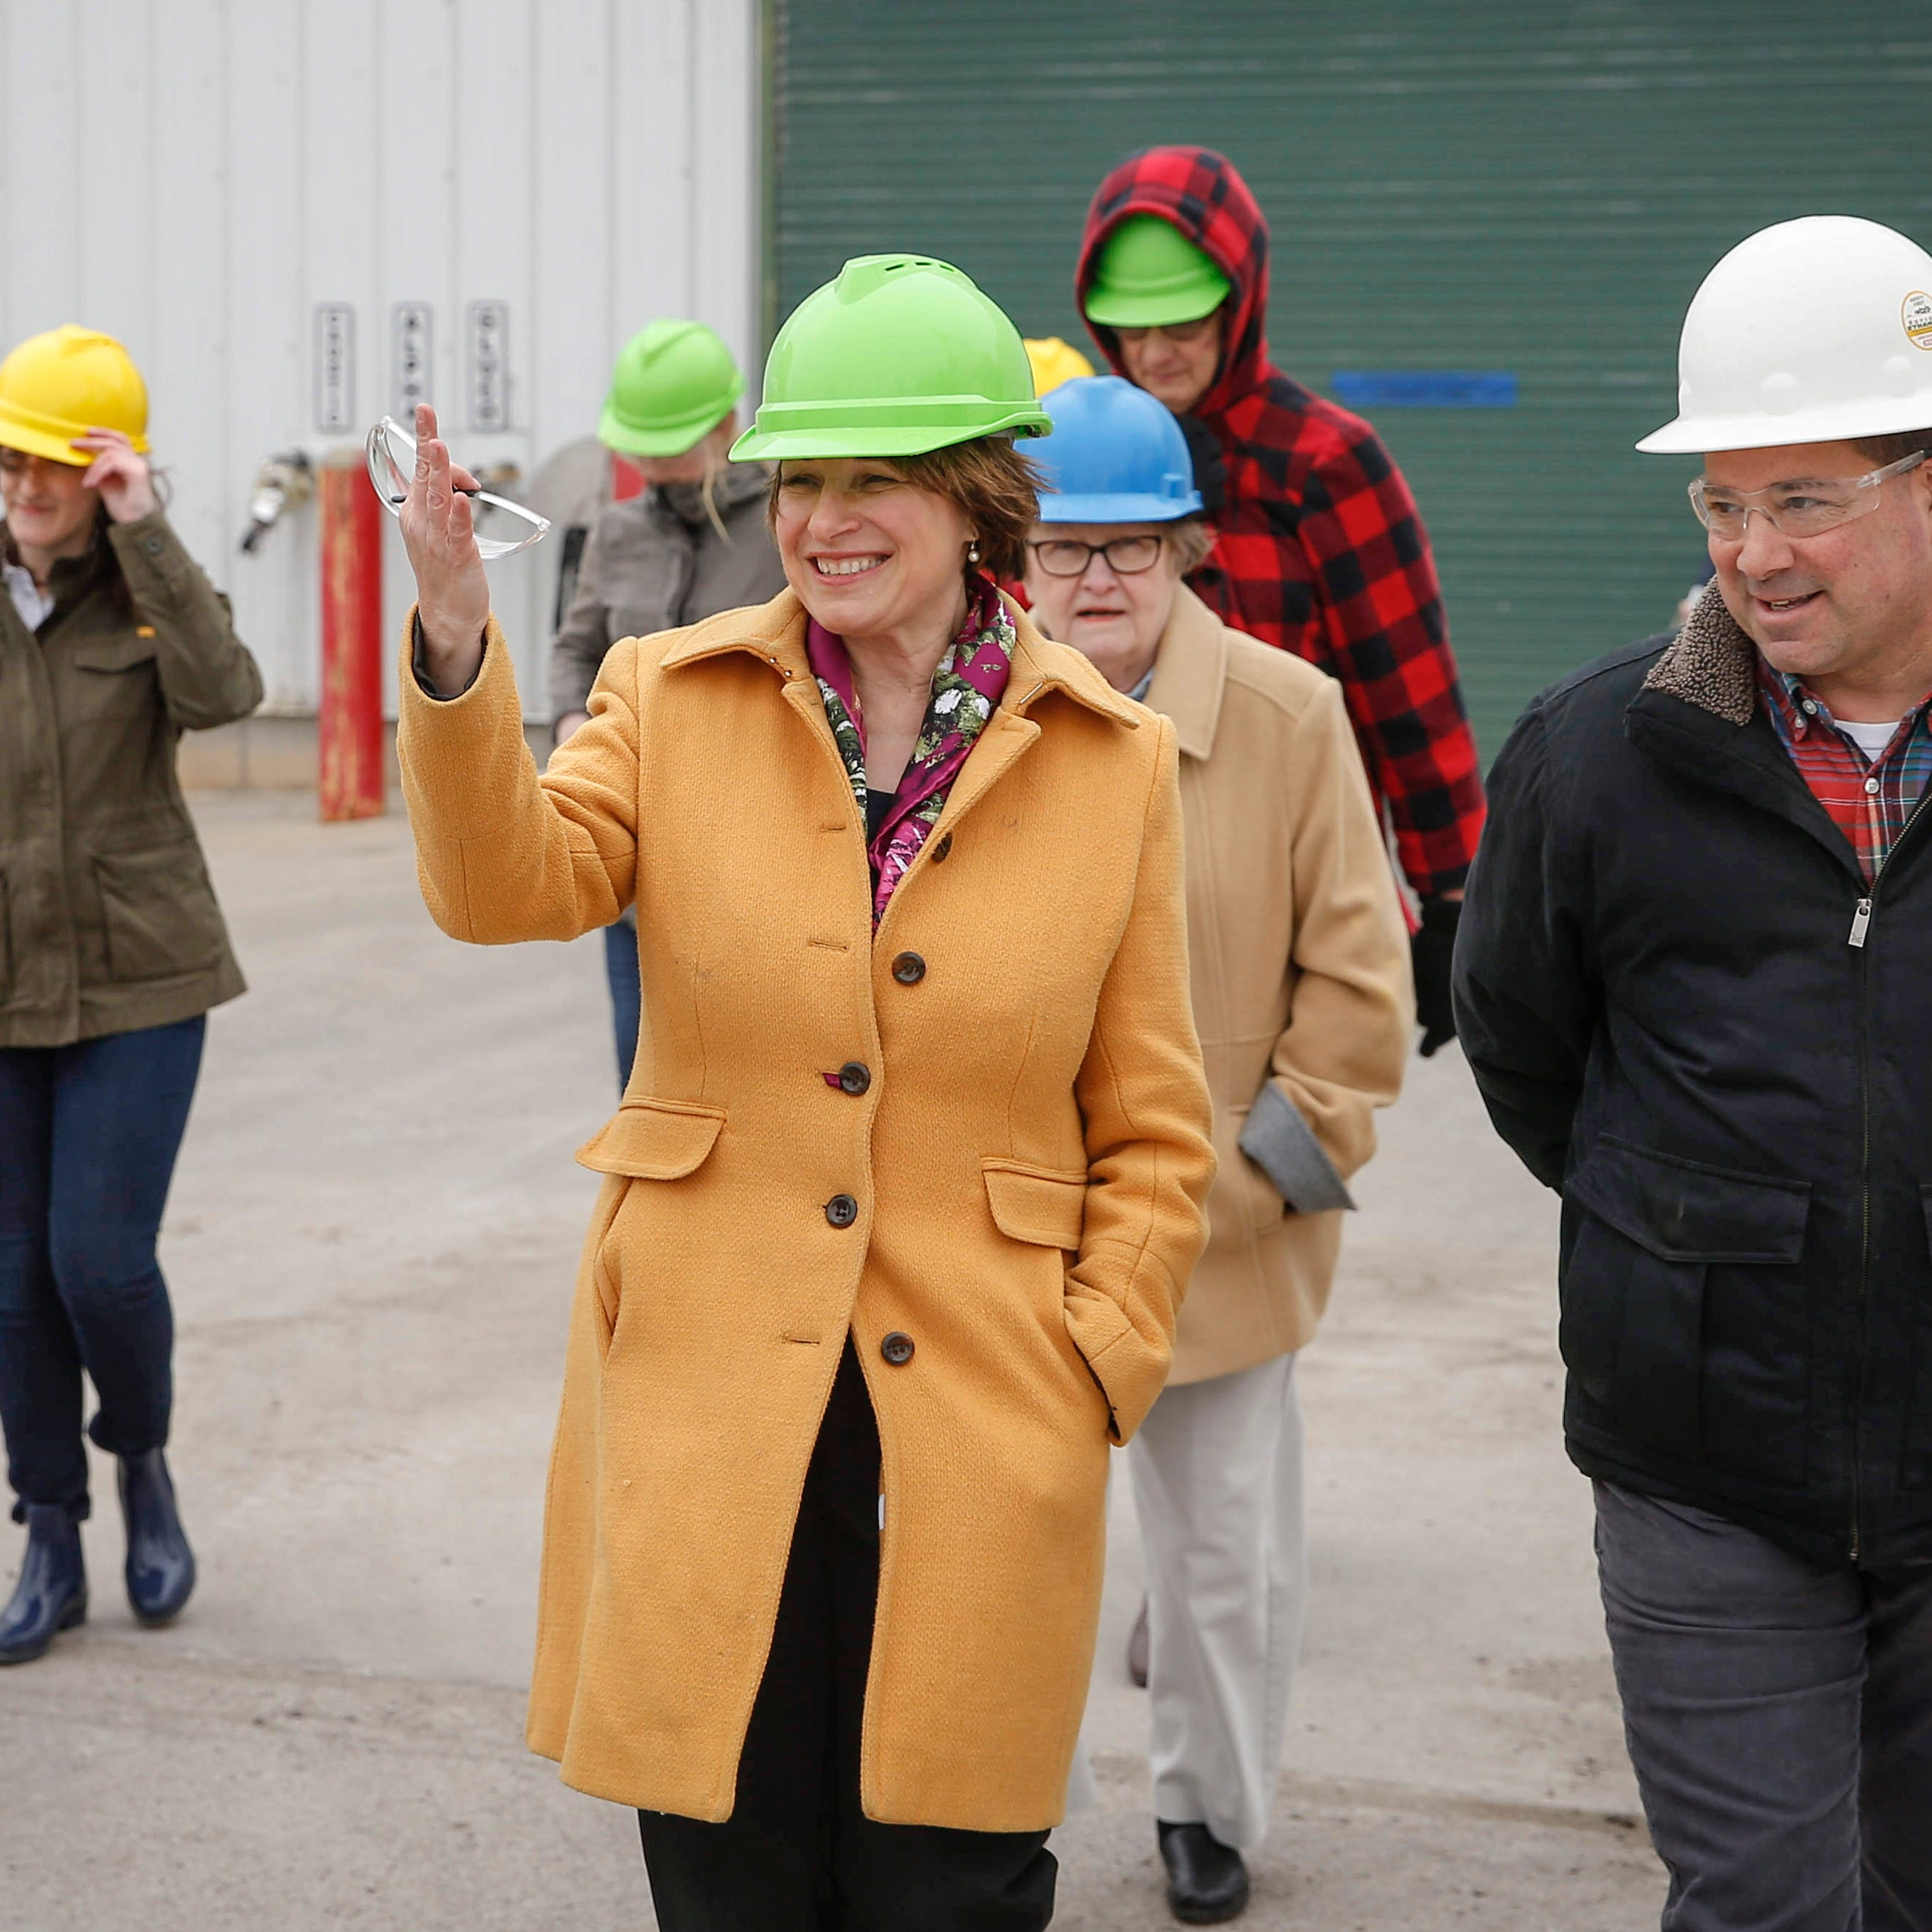 Sen. Amy Klobuchar sees common ground in fights for ethanol production, climate change